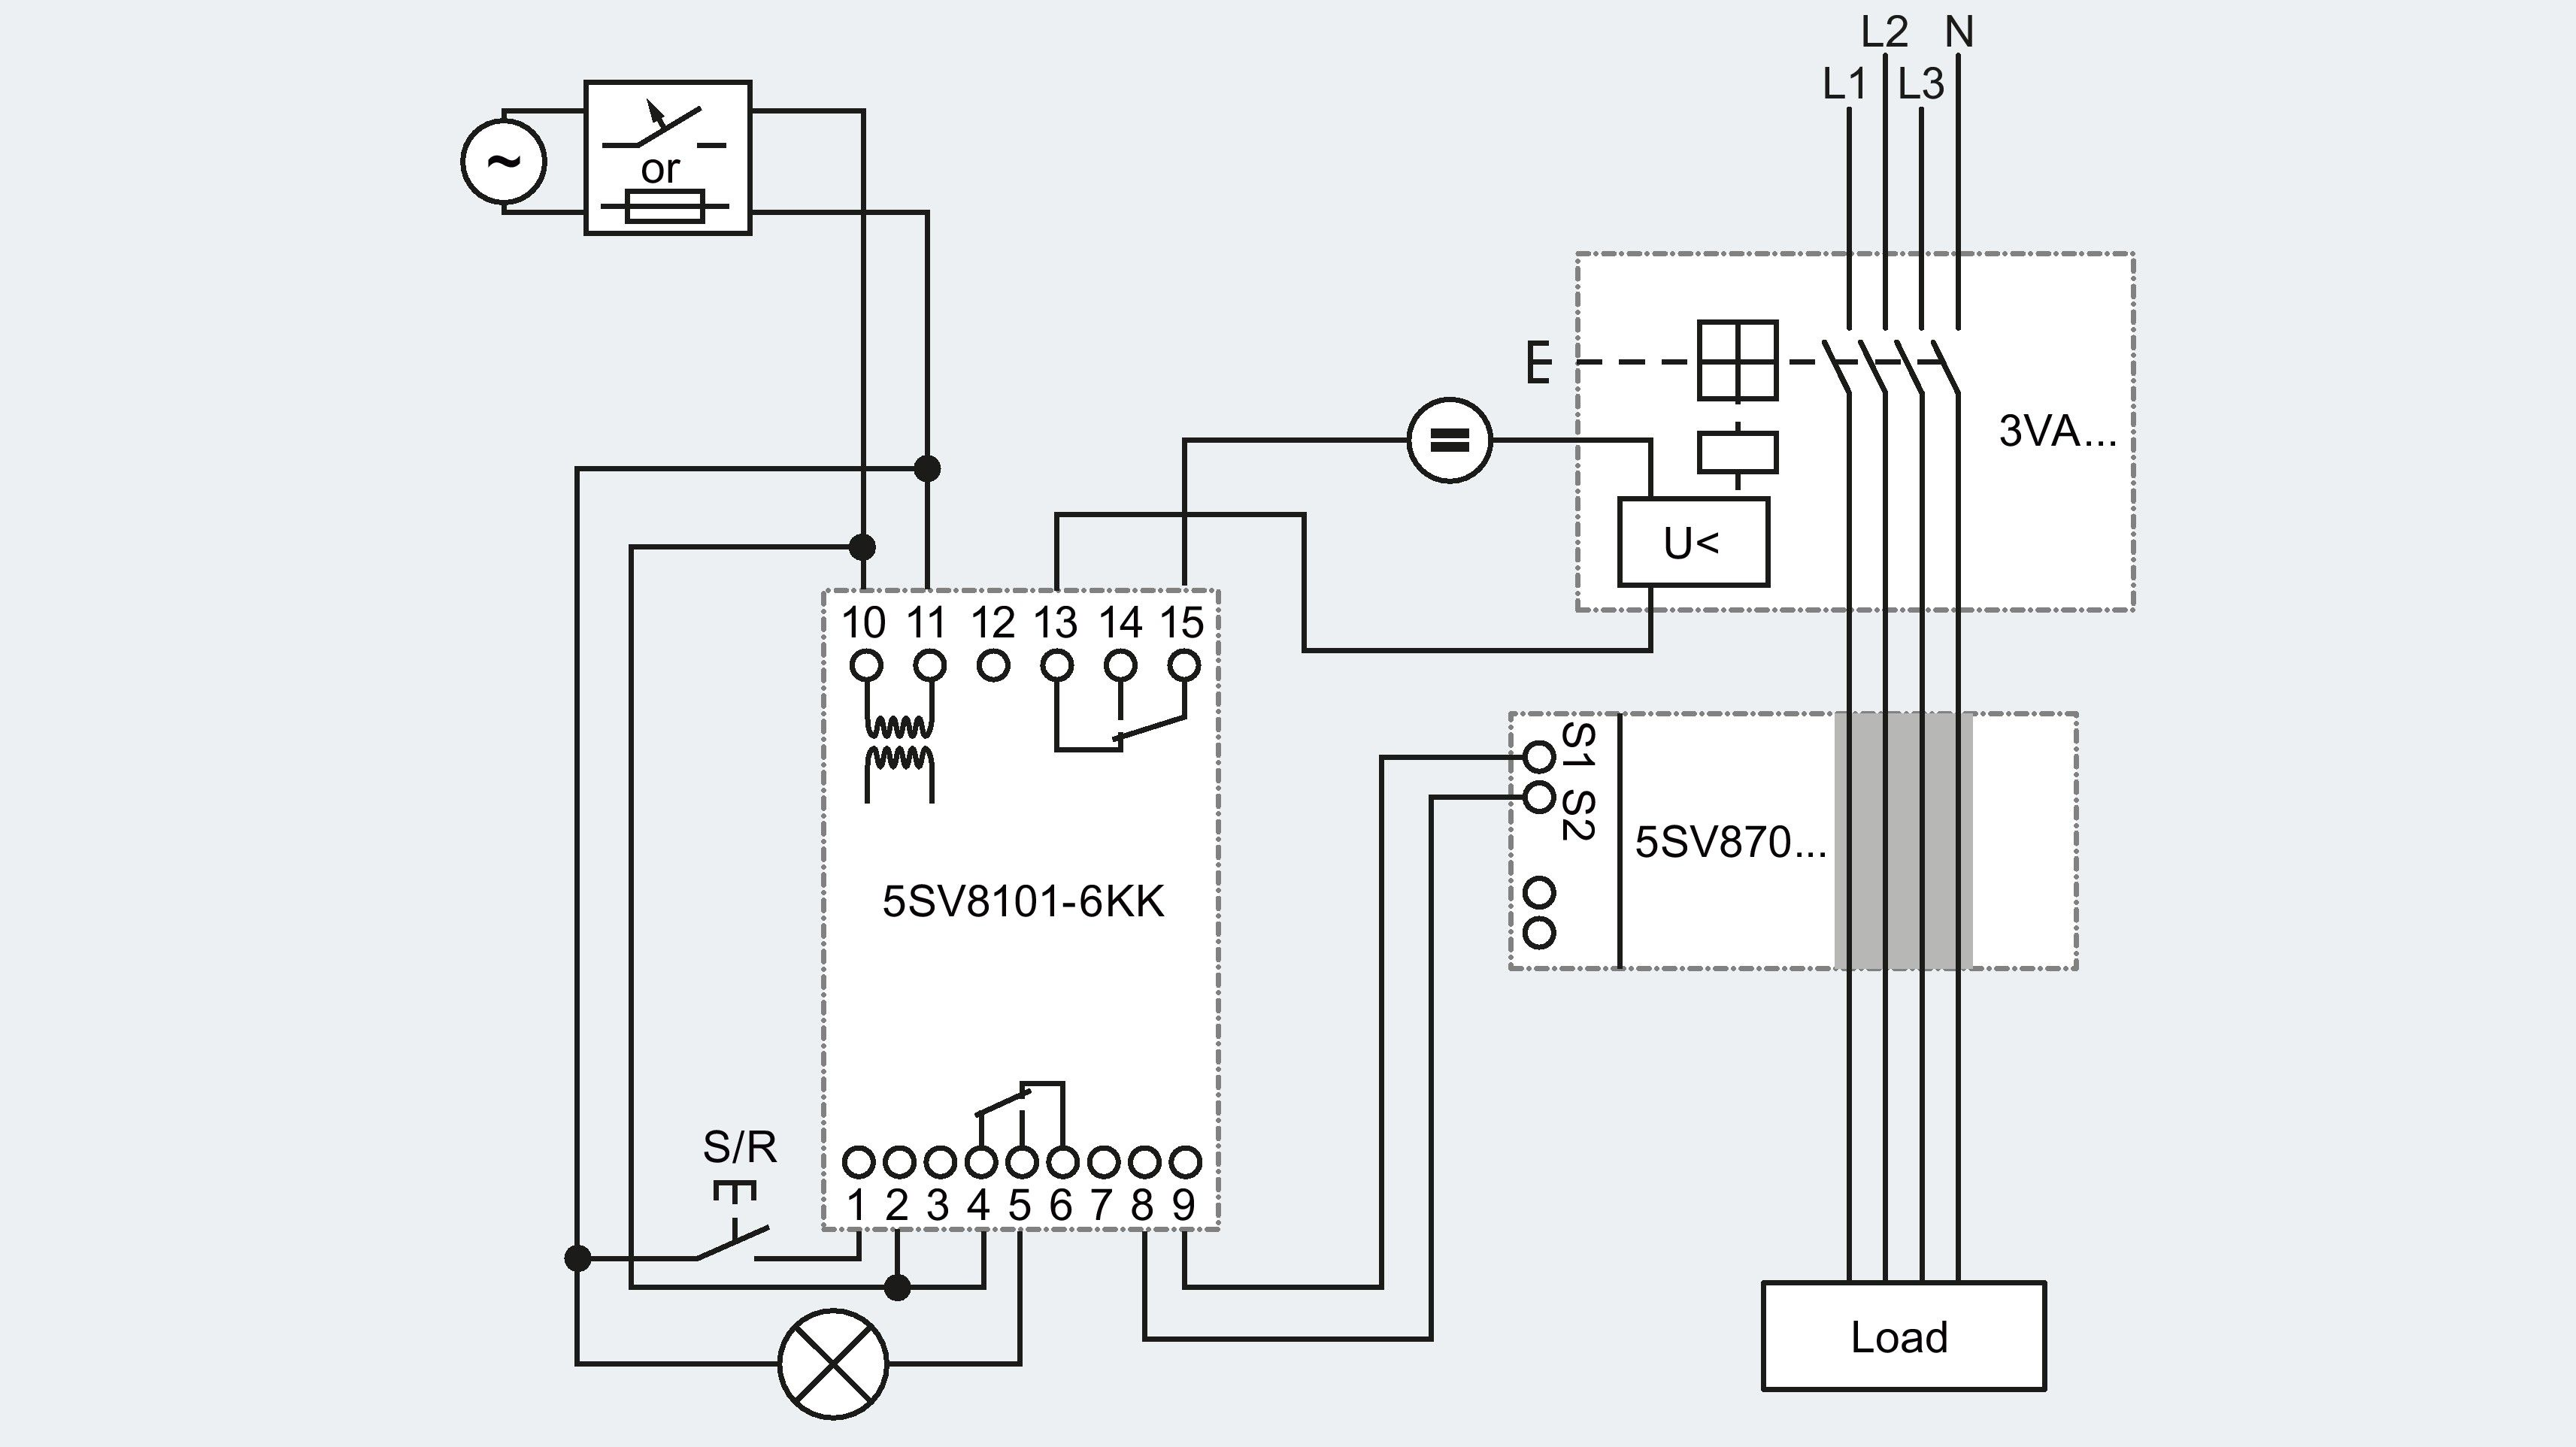 Unique Wiring Diagram Acb Schneider | Diagram, D lighting, WirePinterest